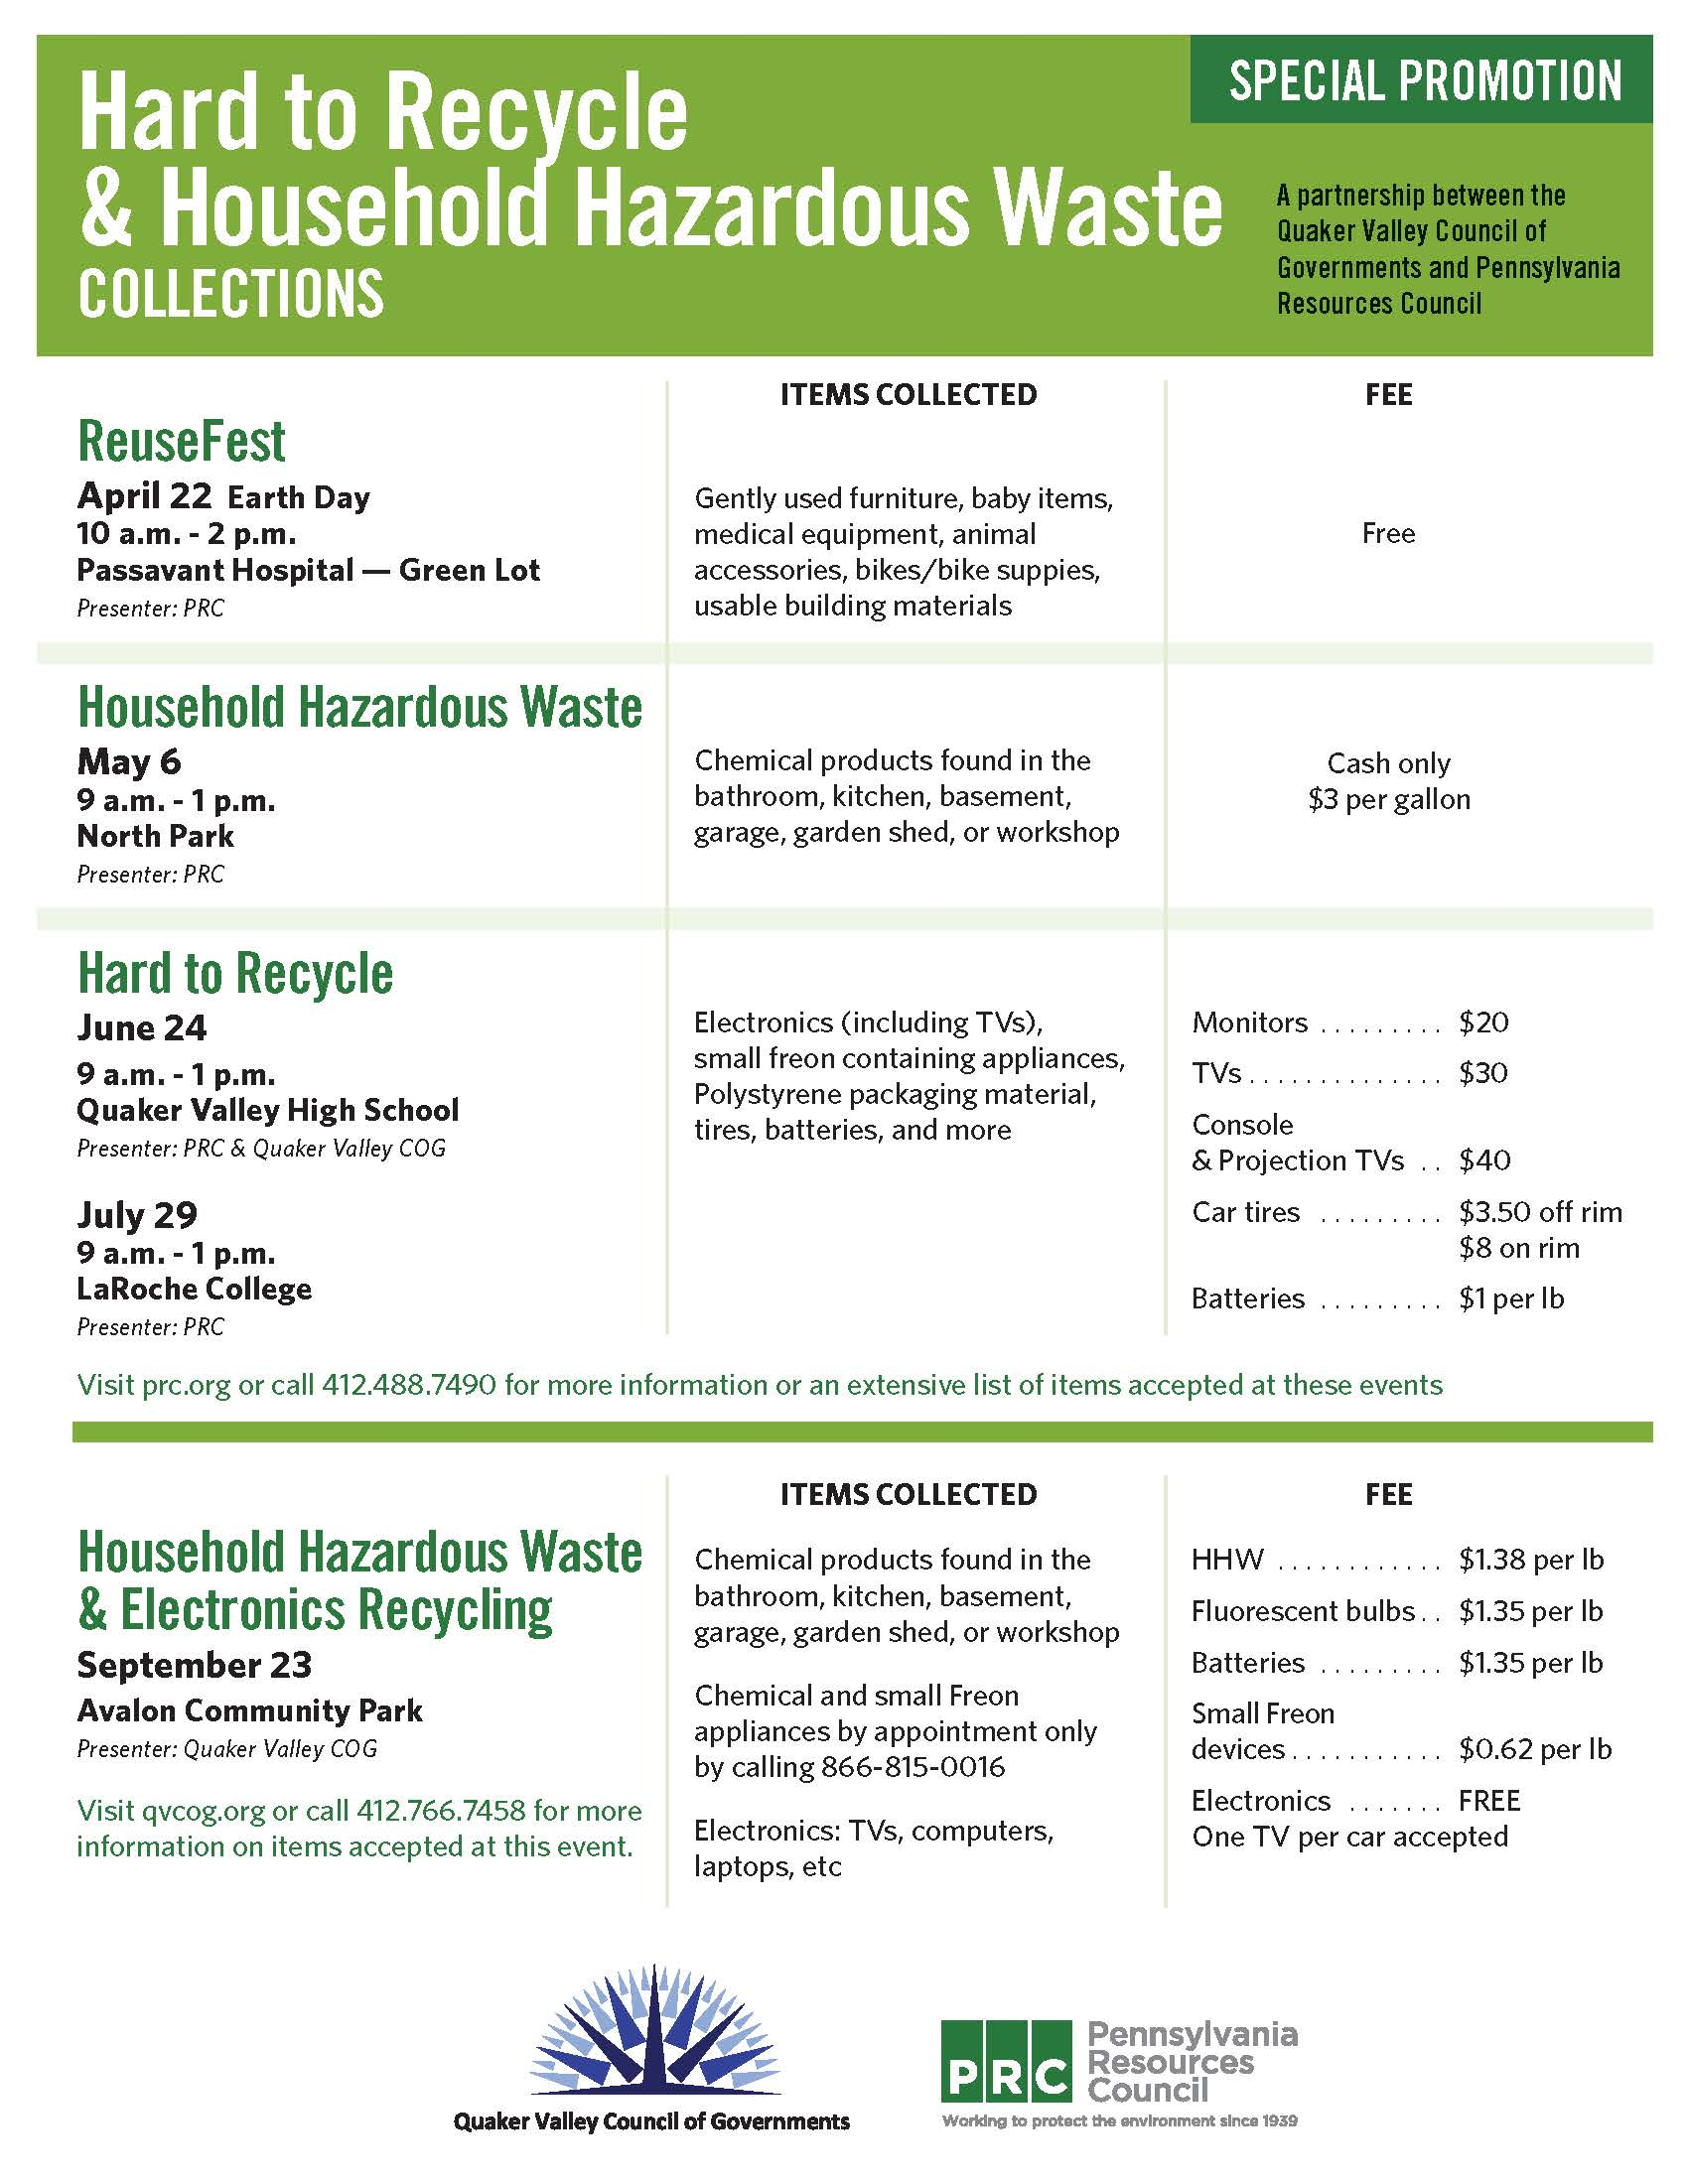 Cog Hard to Recycle and Household Waste Collection - 03-16-17